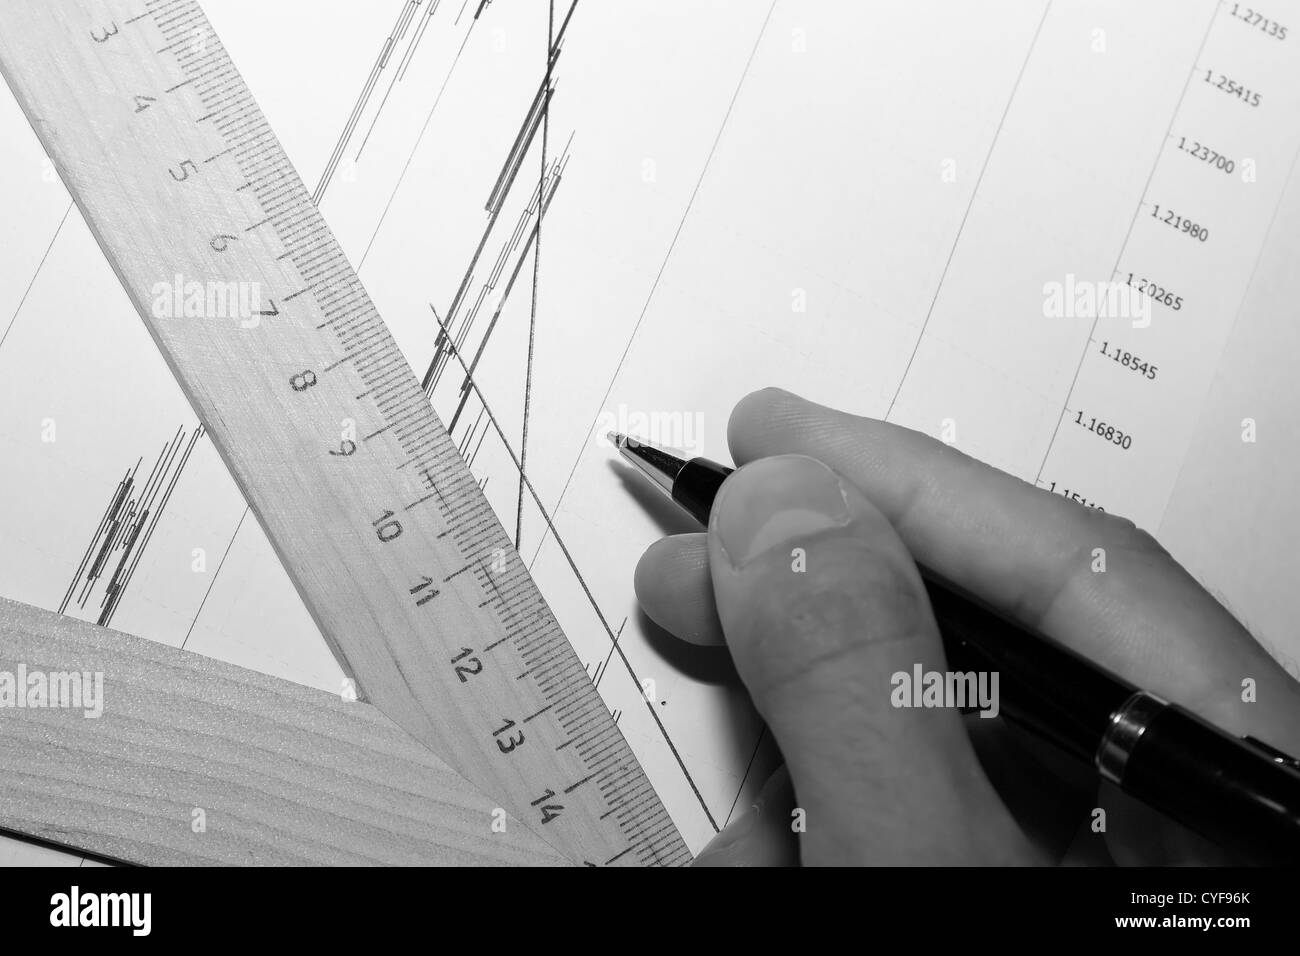 monochrome draft with guidline anf hand with pen. - Stock Image